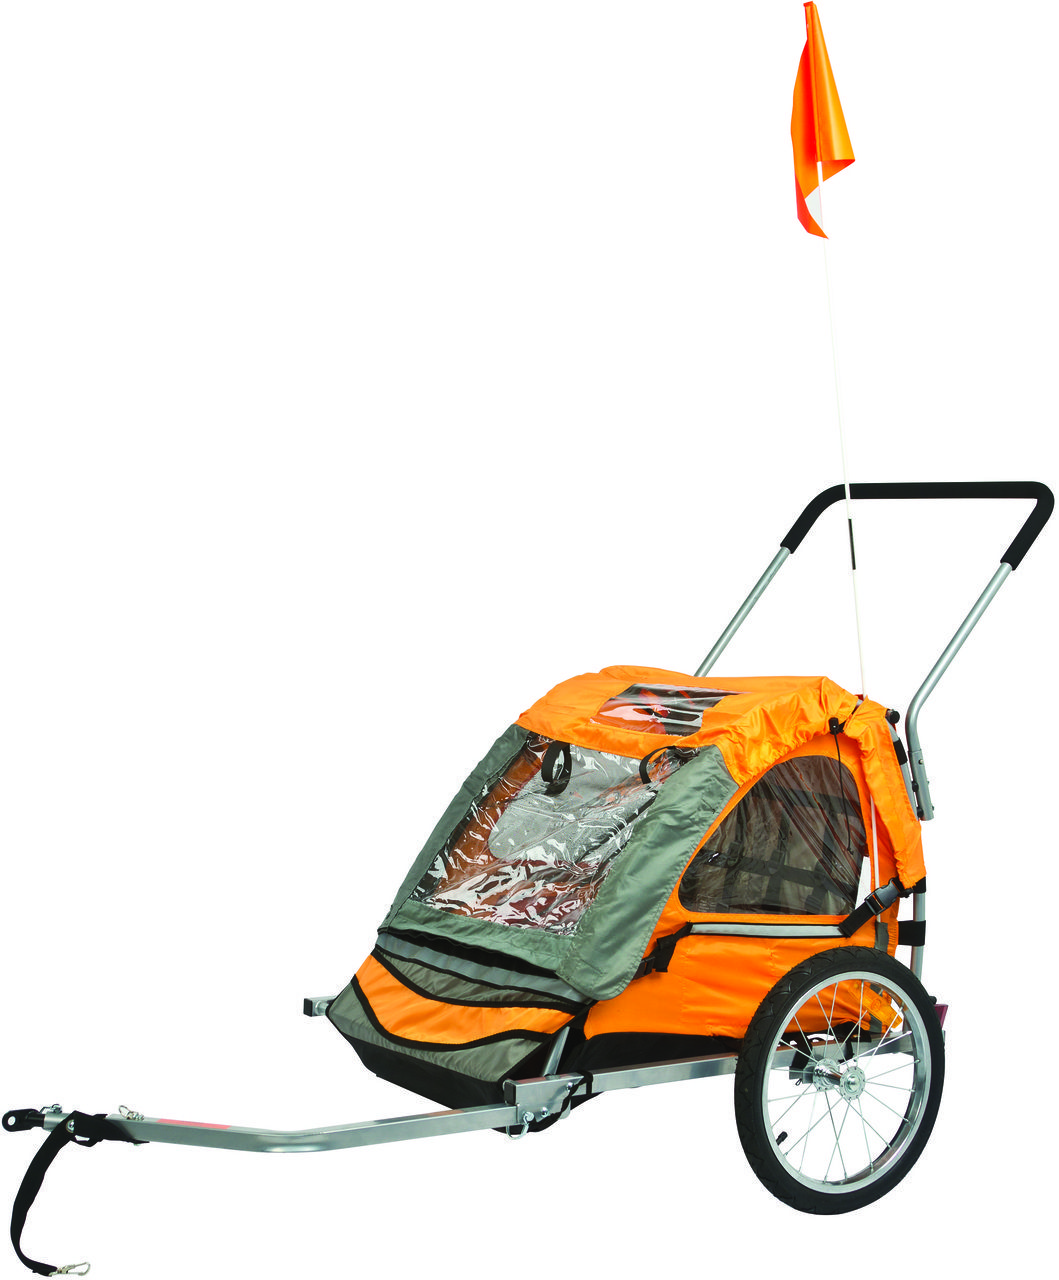 A combination bike trailer and 2 seater stroller for